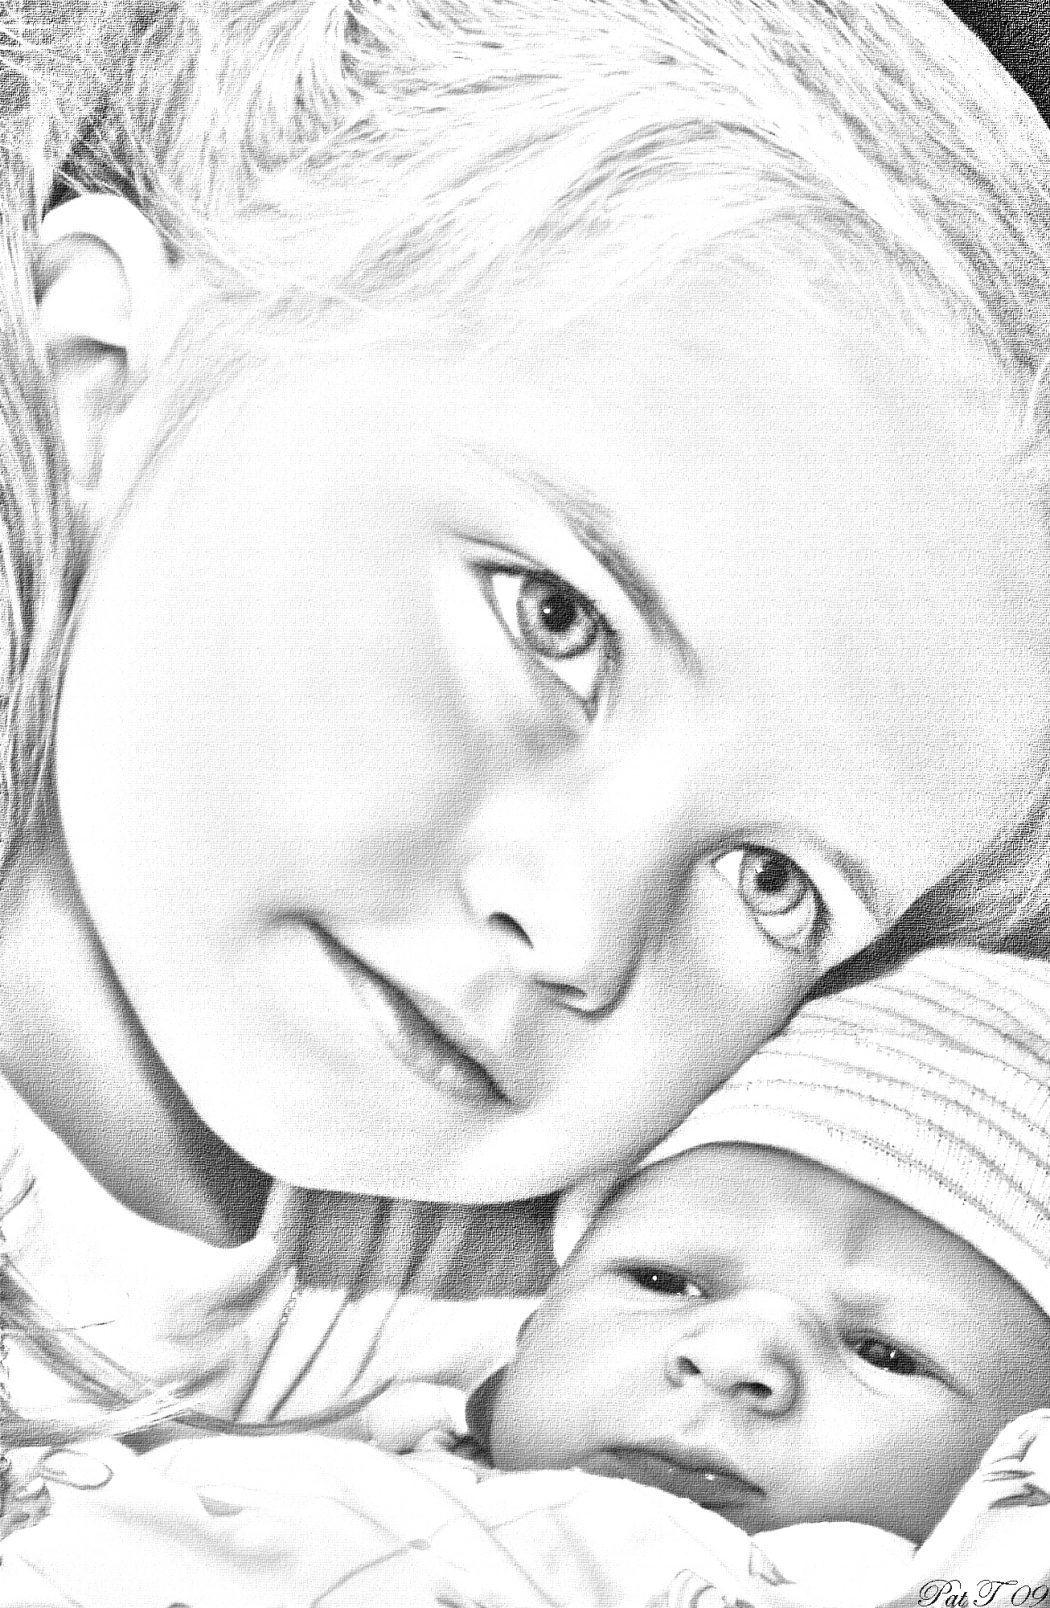 dylan-and-emilyPhoto-pop-pencil-sketch-1 Stunningly And Incredibly Realistic Pencil Portraits